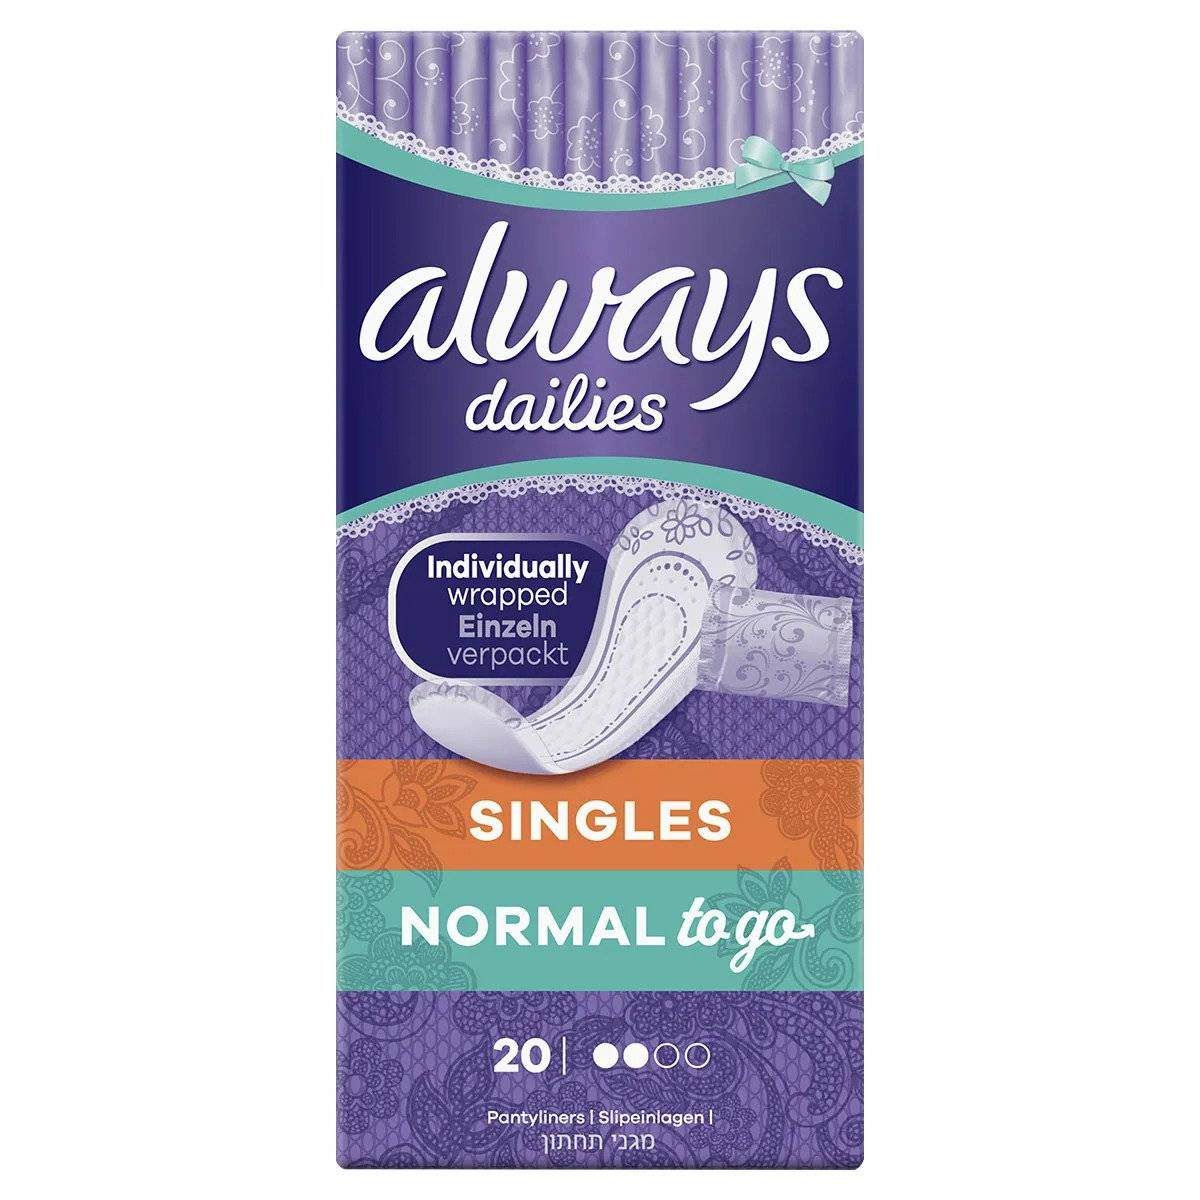 ALWAYS DAILIES Singles Normal To Go Fresh Panty Liners x20 Toiletries